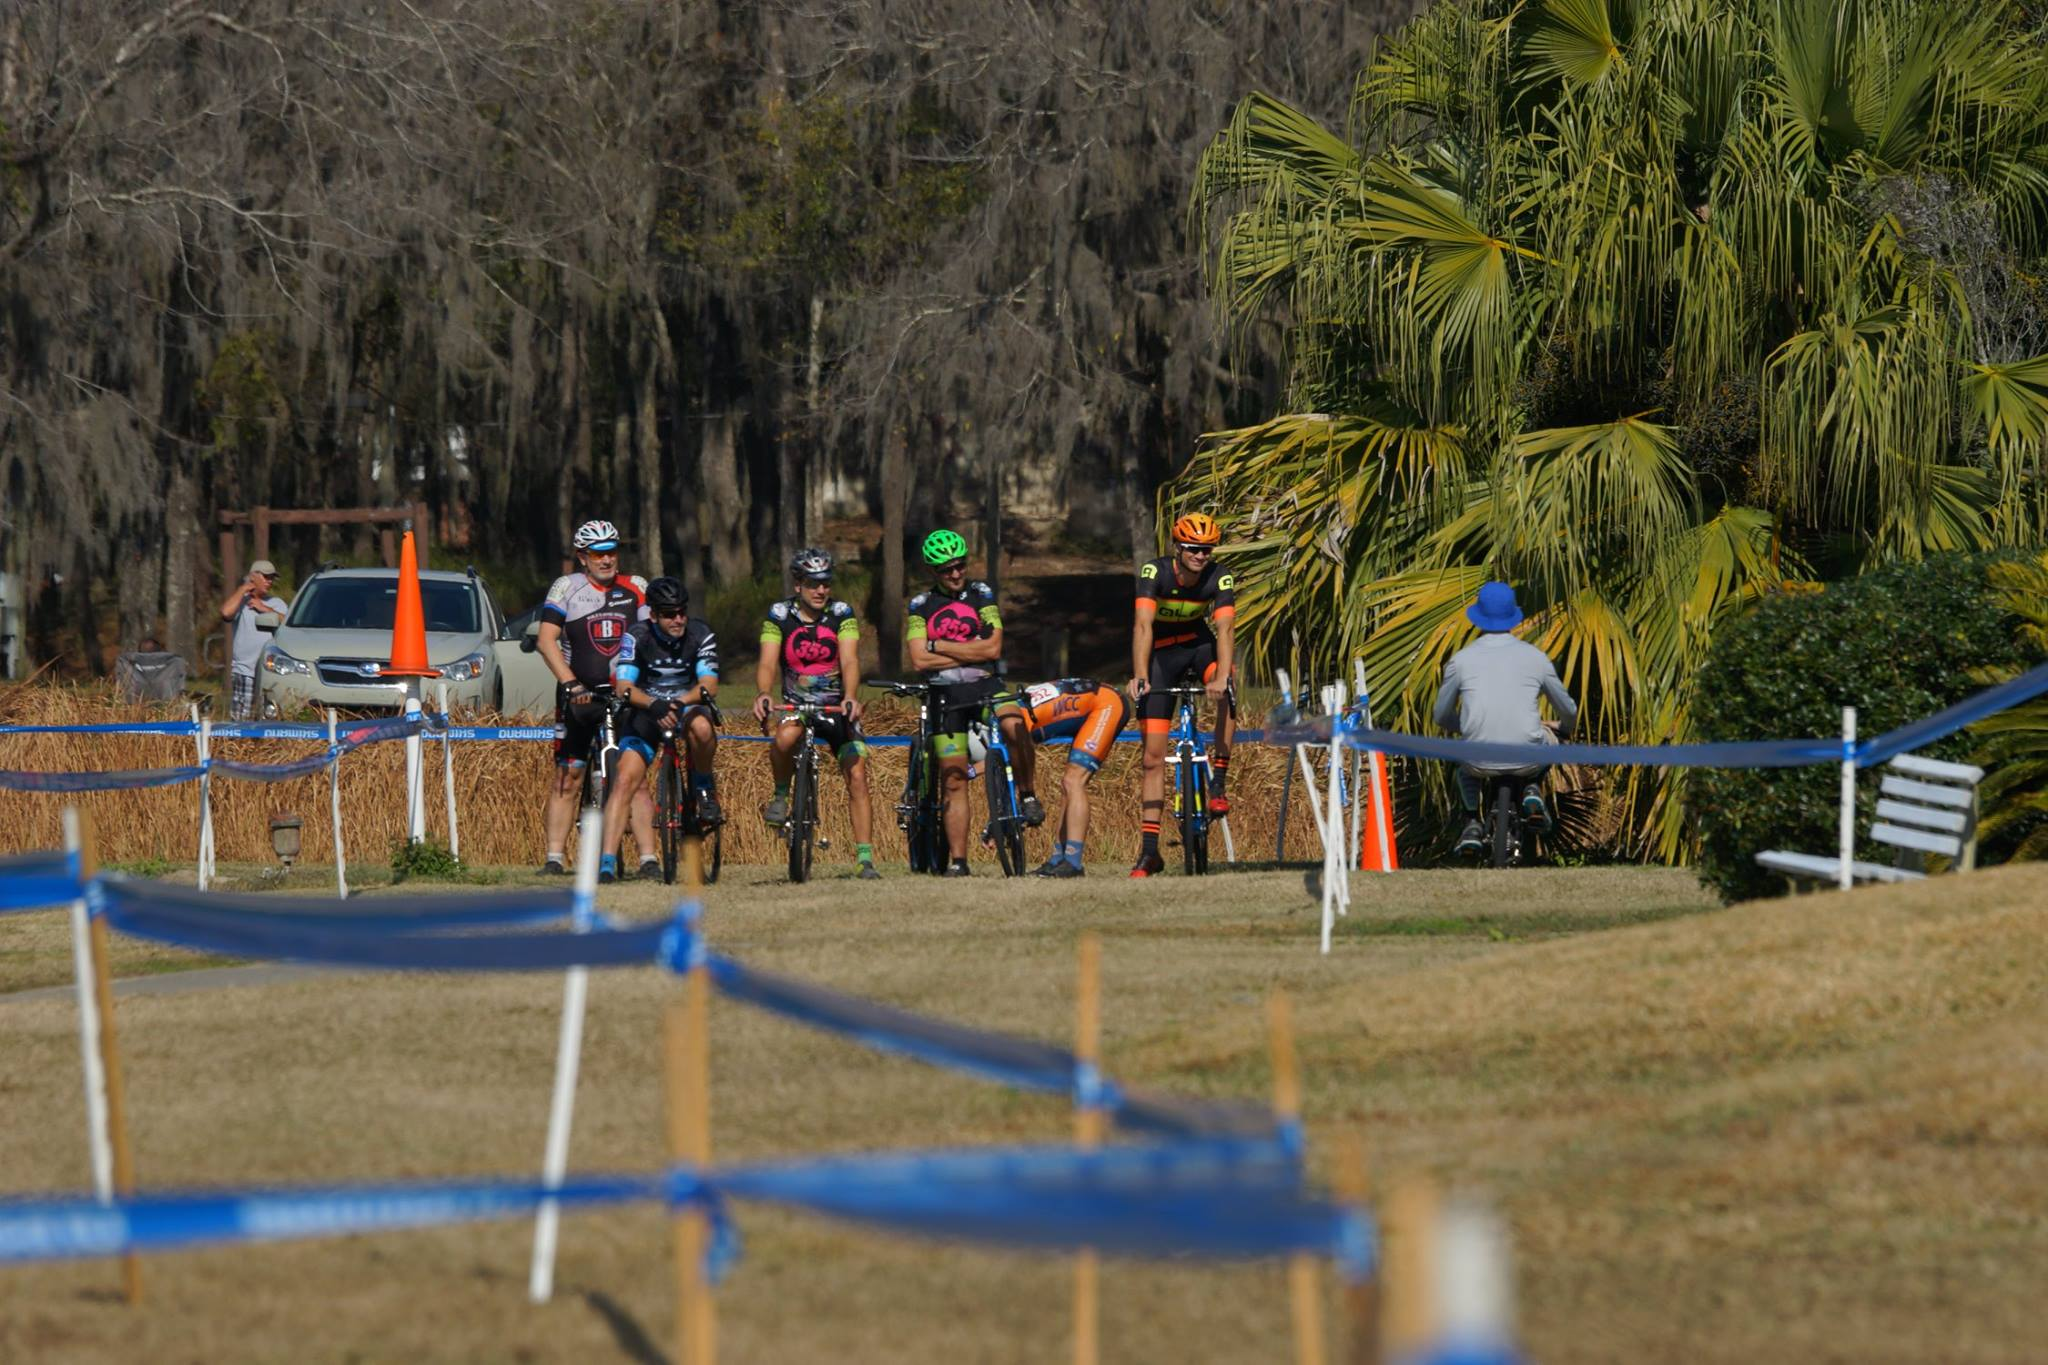 FLCX - Florida Cyclcross - we are back